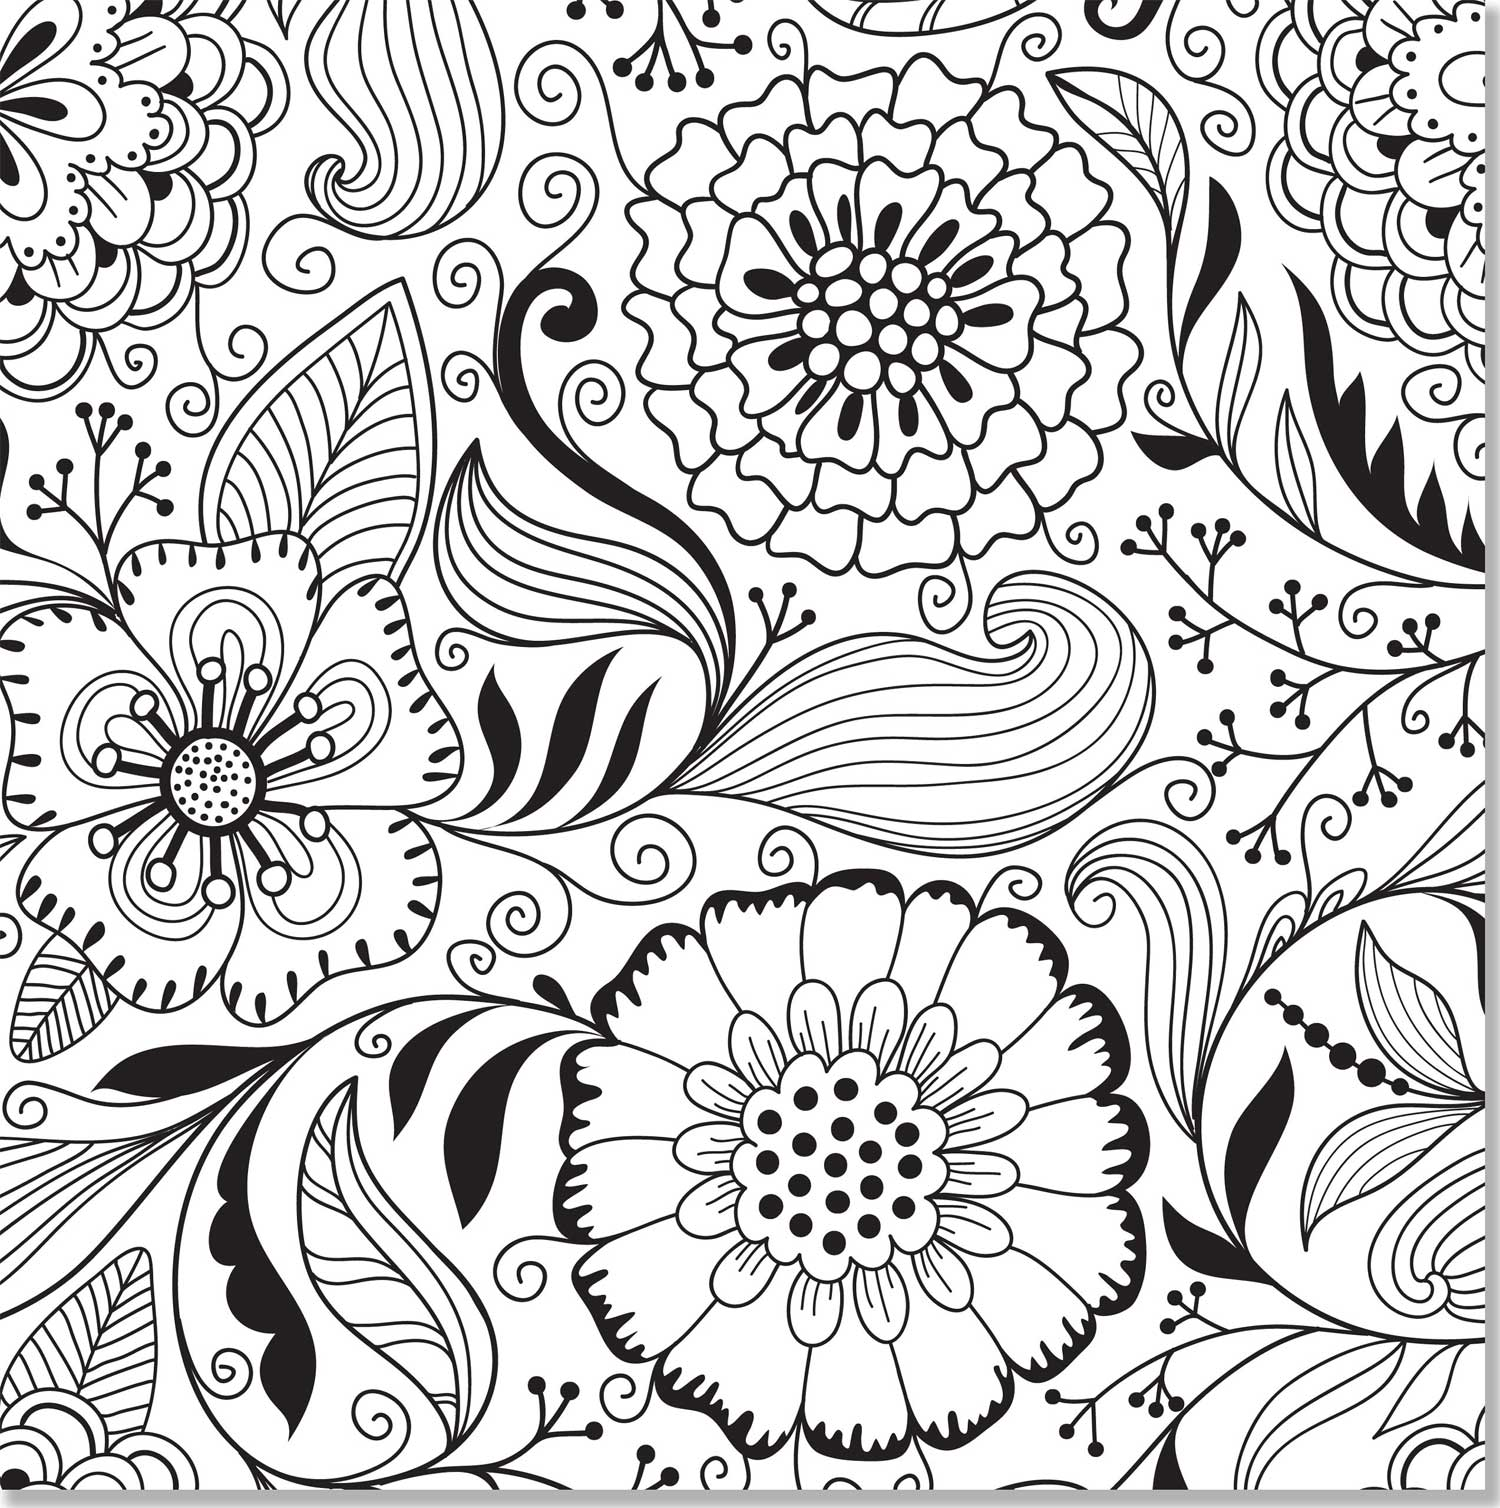 1500x1508 Free Printable Coloring Pages For Adults Only Preschool In Fancy